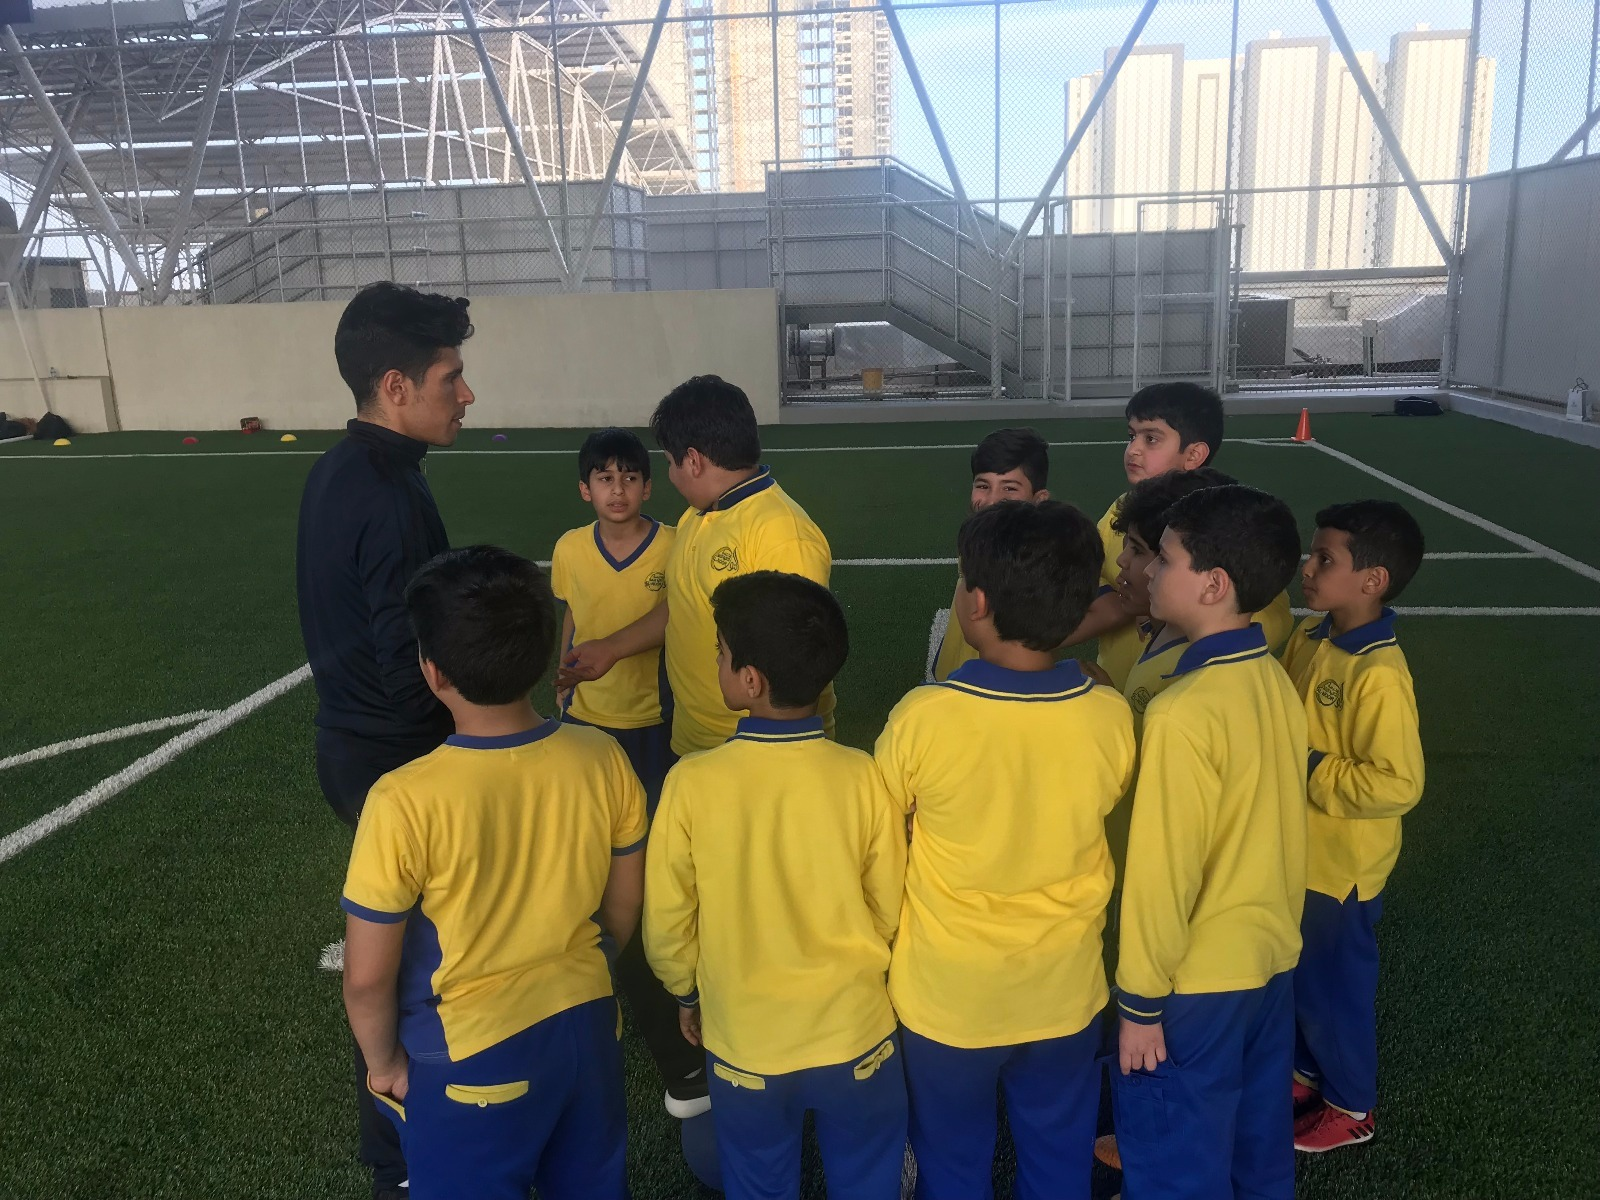 Soccer win for under 10 Al-Noor against AUS 17-0! - Image 3